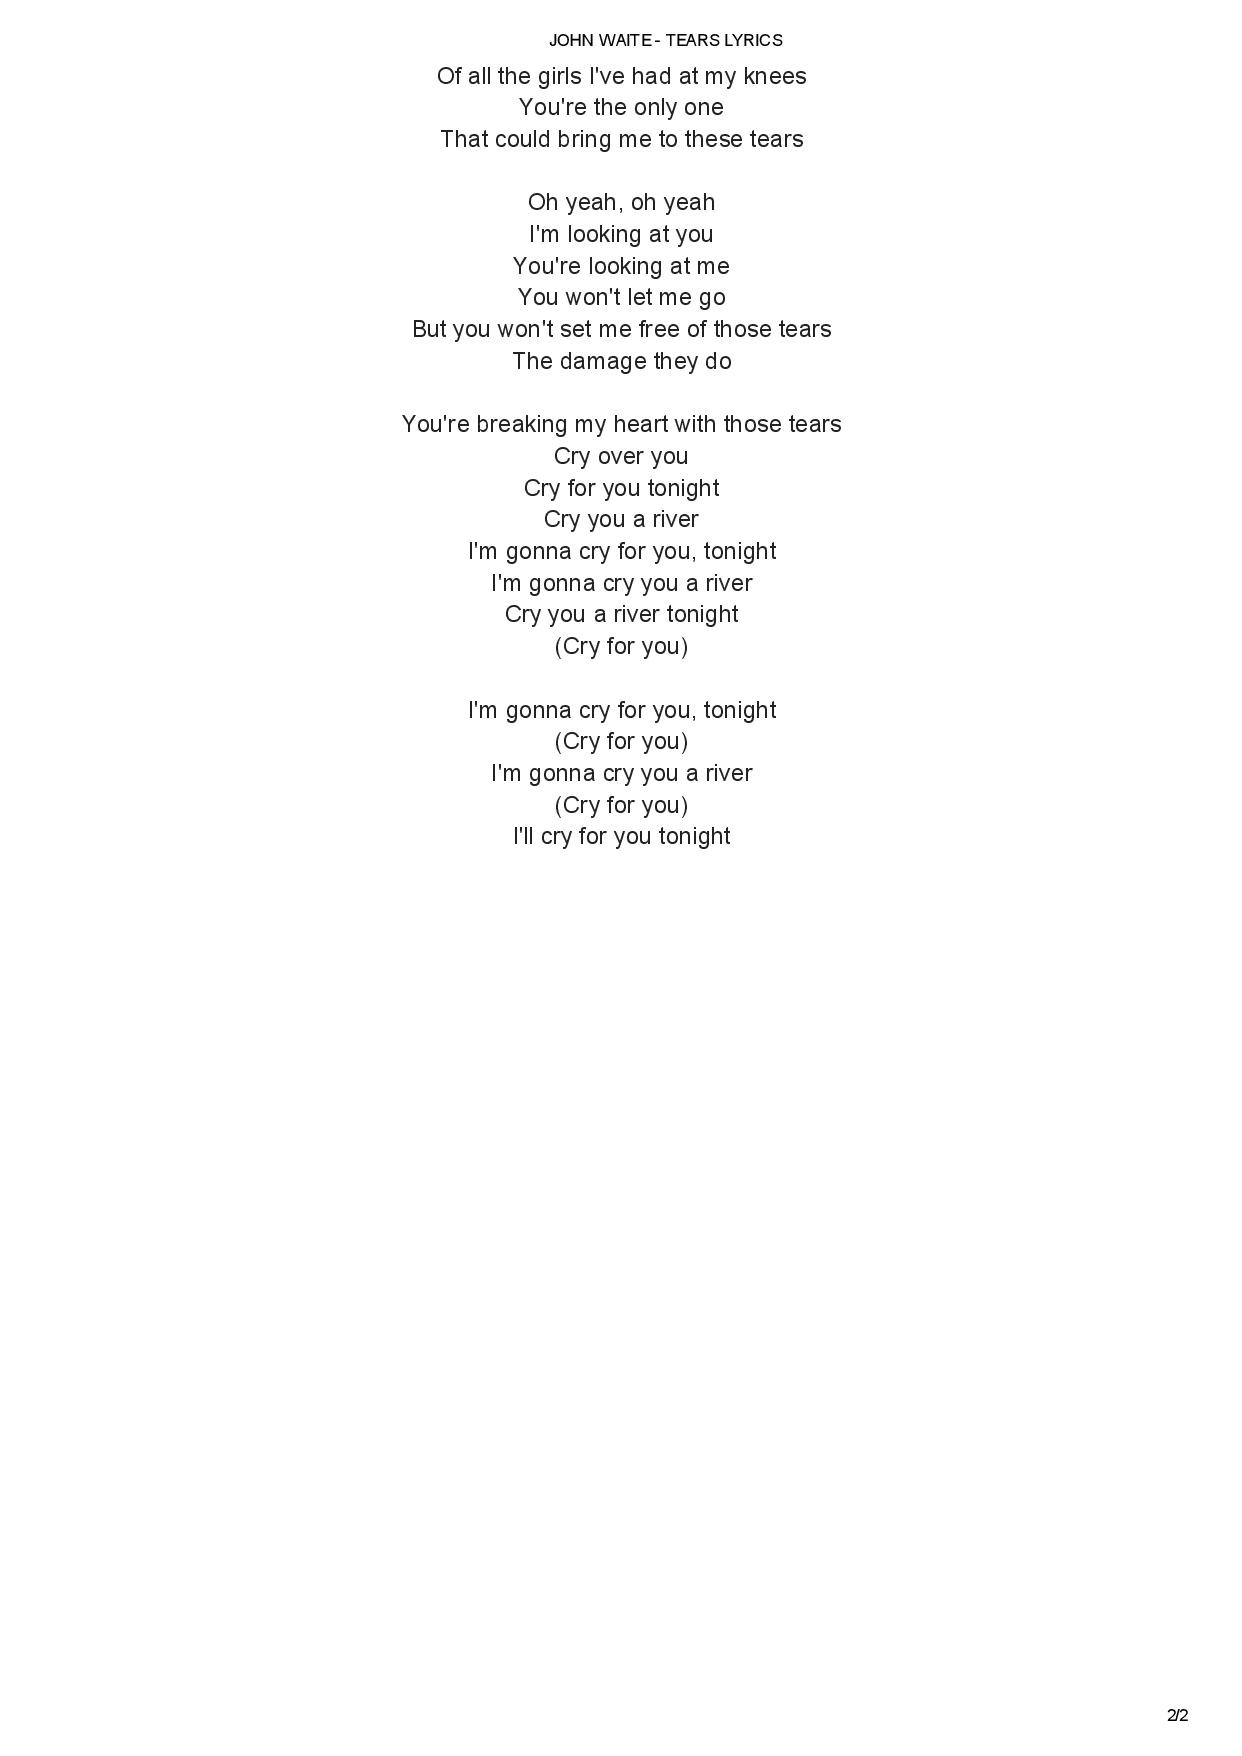 JOHN WAITE - TEARS LYRICS-page-002.jpg